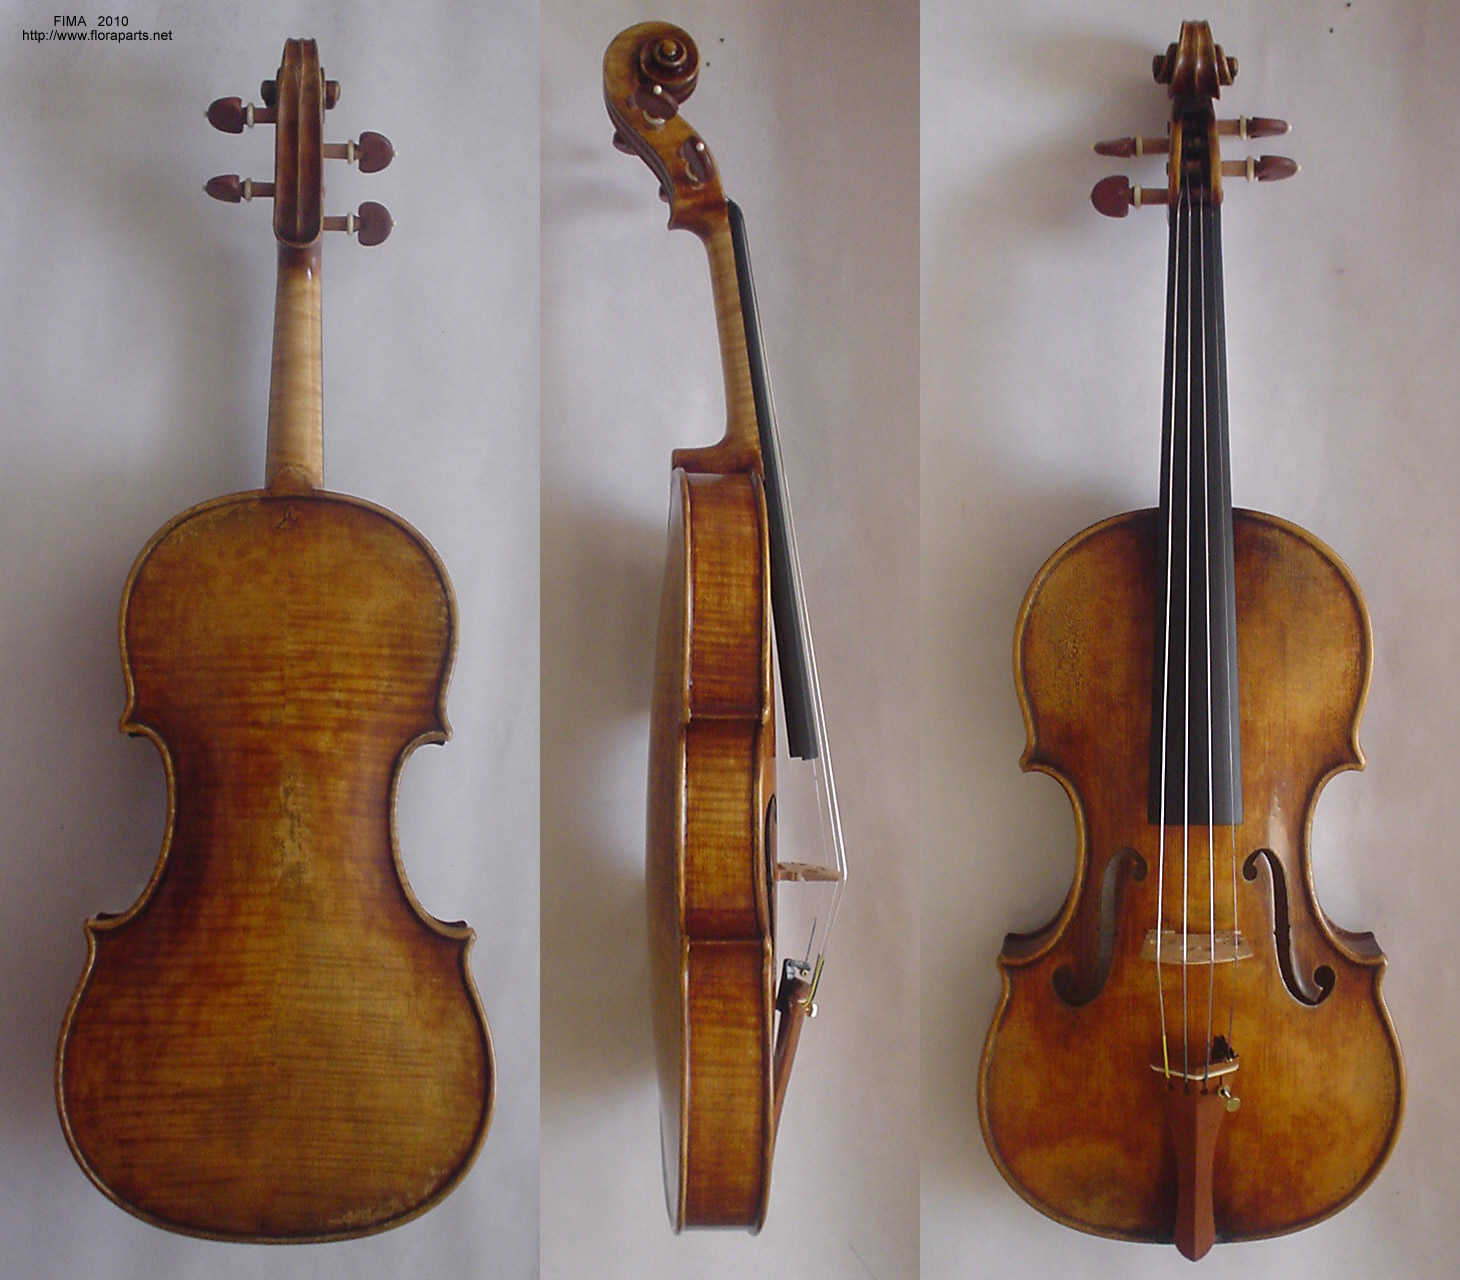 FIMA Master Antiqued Violin Series   Model  FPF